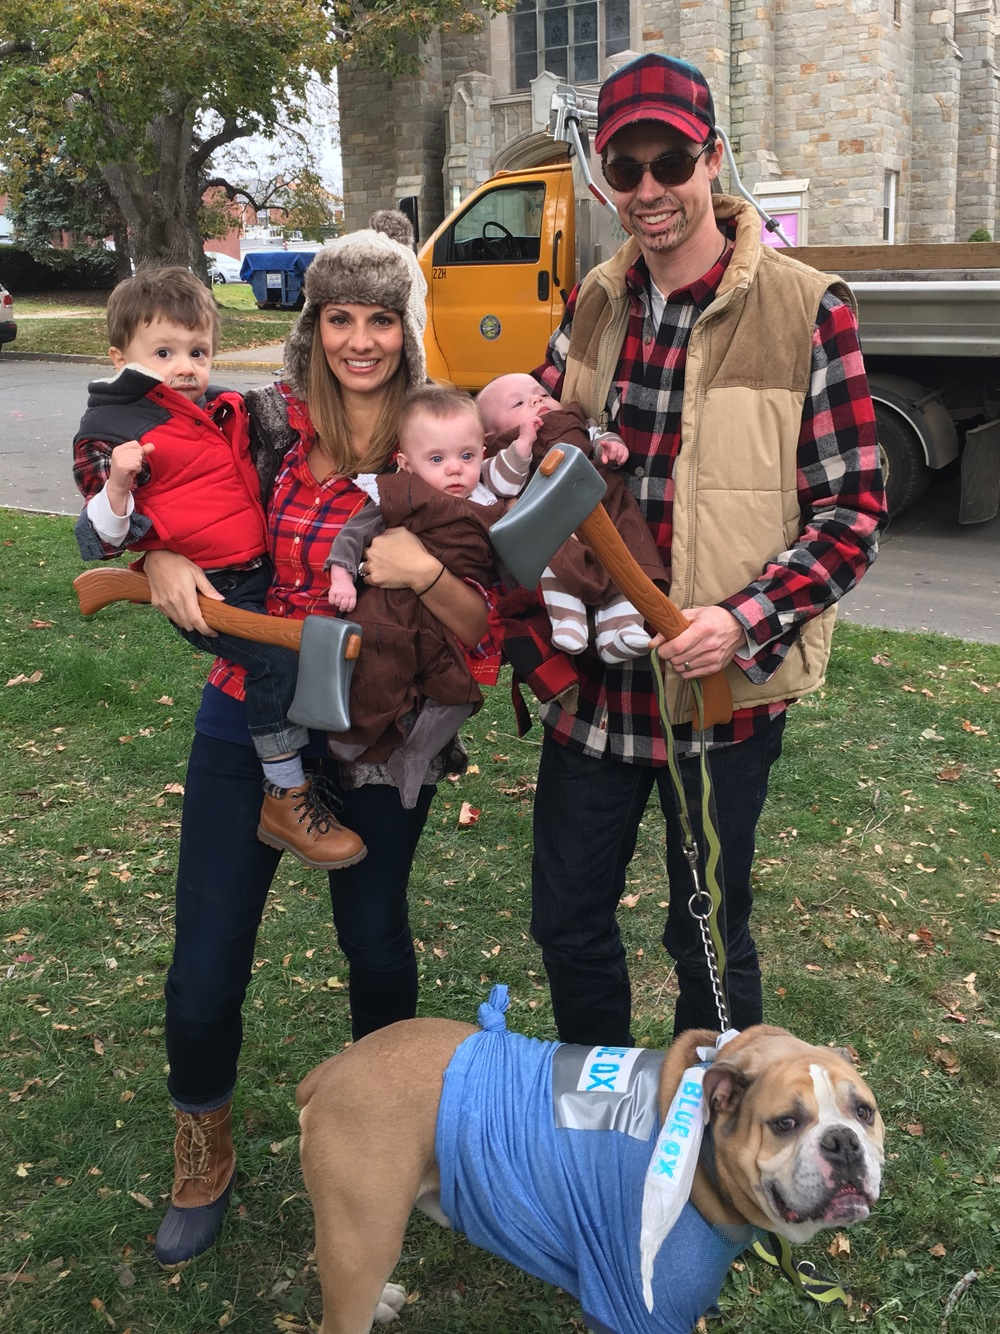 Halloween 2016-Lumberjacks and logs.